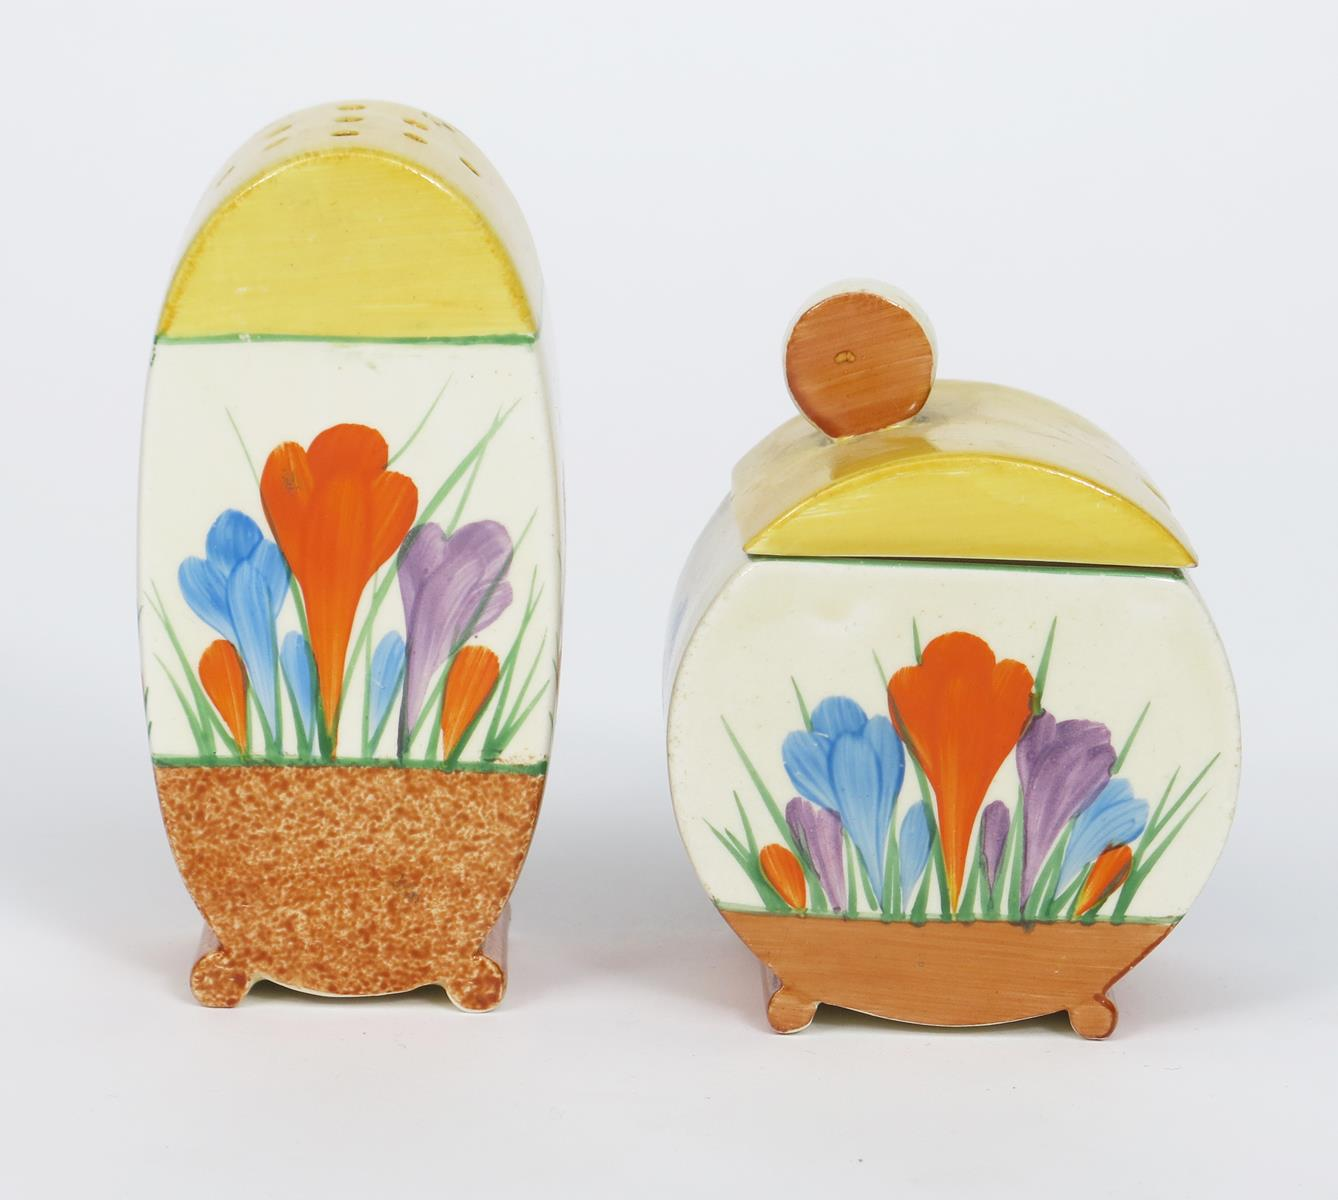 'Crocus' a Clarice Cliff Bizarre Bon Jour sugar sifter, painted in colours, between yellow and brown